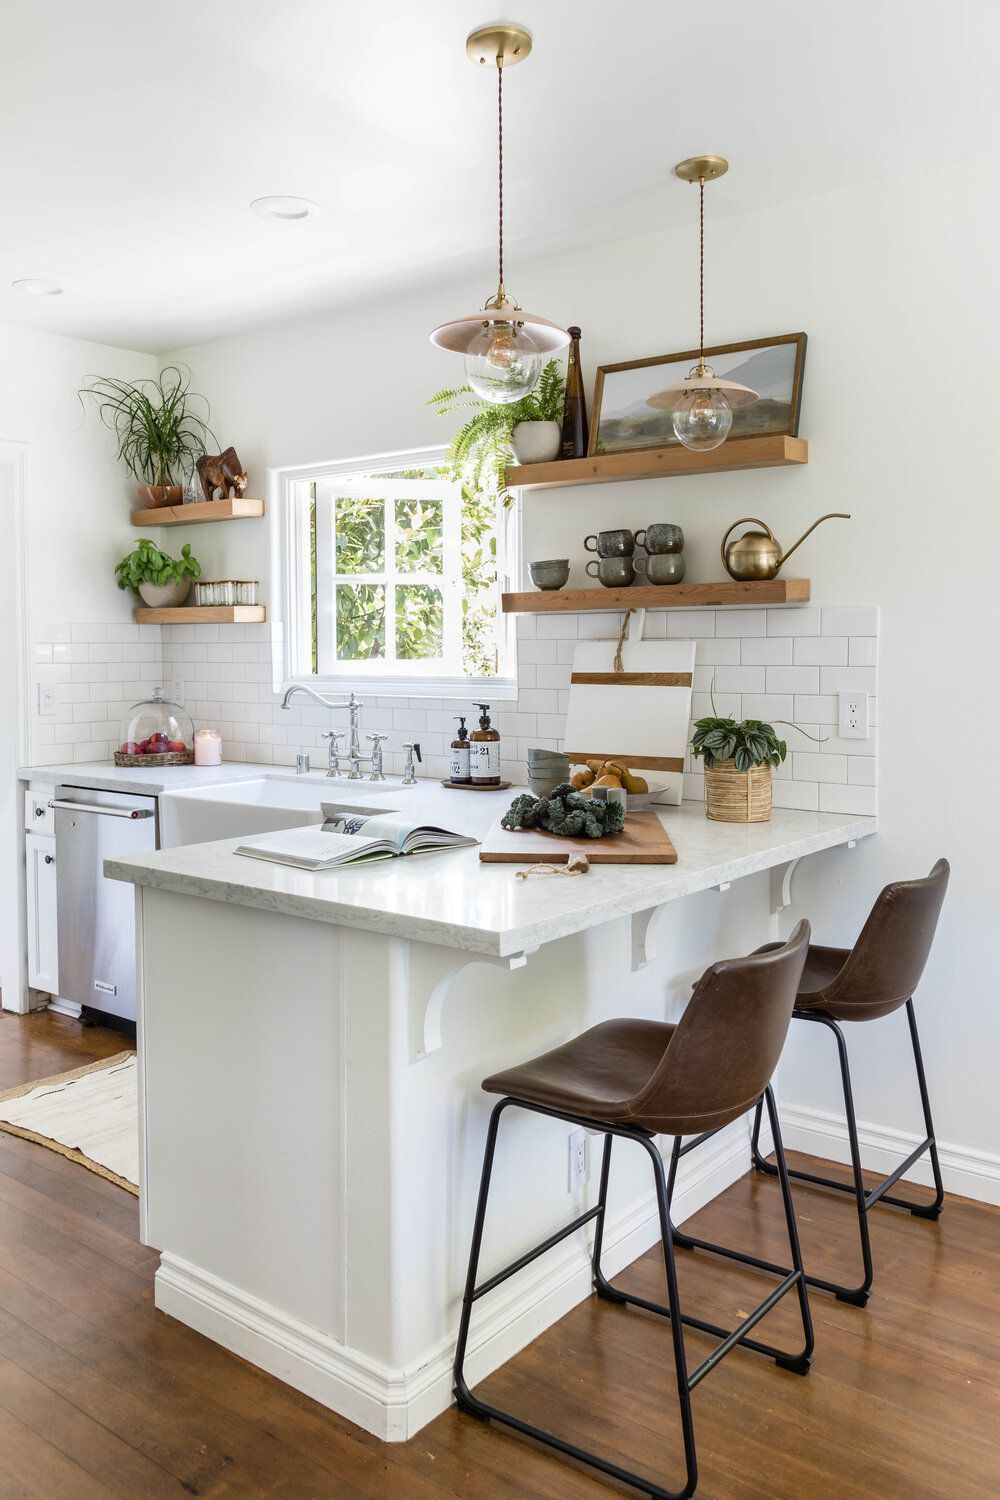 These 23 Bar Ideas Make The Perfect Addition To Any Kitchen In 2021 Kitchen Renovation Kitchen Bar Design Magnolia Home Decor